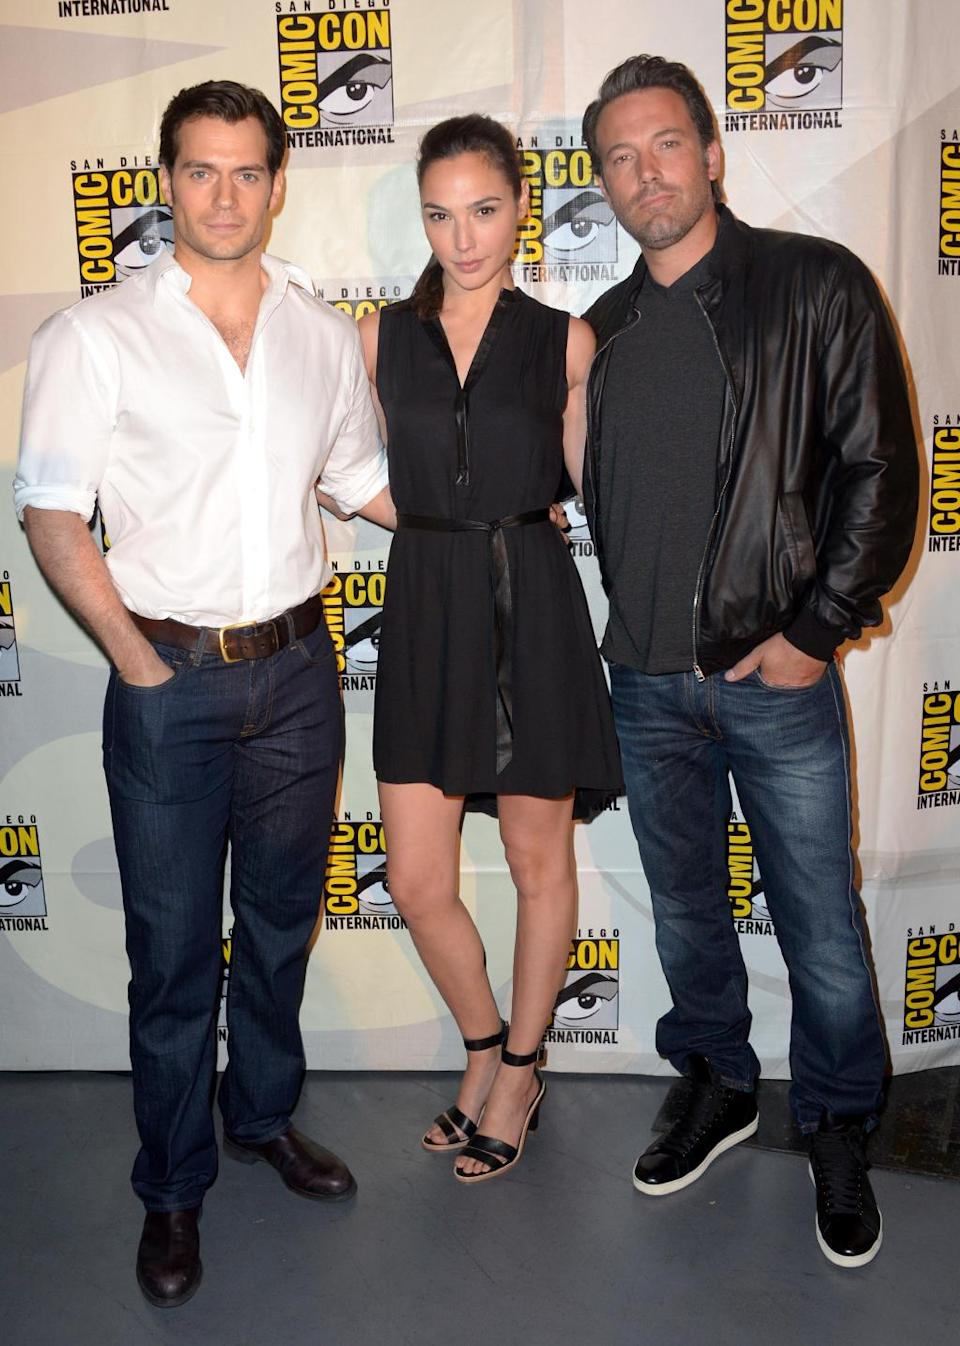 <p>Gadot appeared at SDCC following the announcement that she would play Wonder Woman in Batman v Superman . She posed alongside Henry Cavill and Ben Affleck following the panel presentation on July 26, 2014. (Photo: Albert L. Ortega/Getty Images) </p>